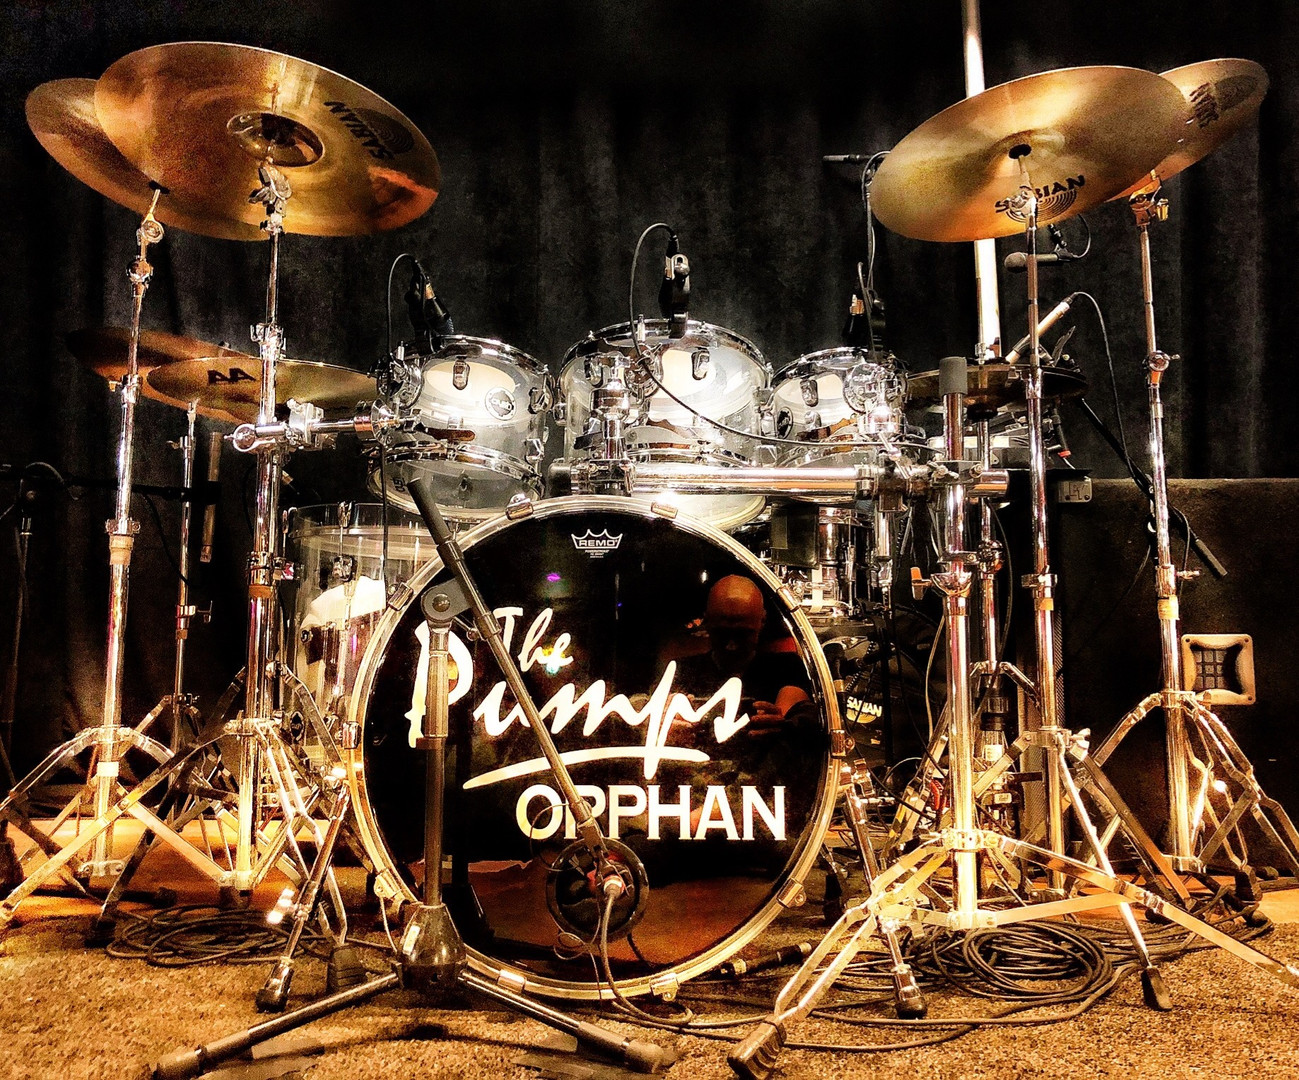 Pumps + Orphan Drum Kit